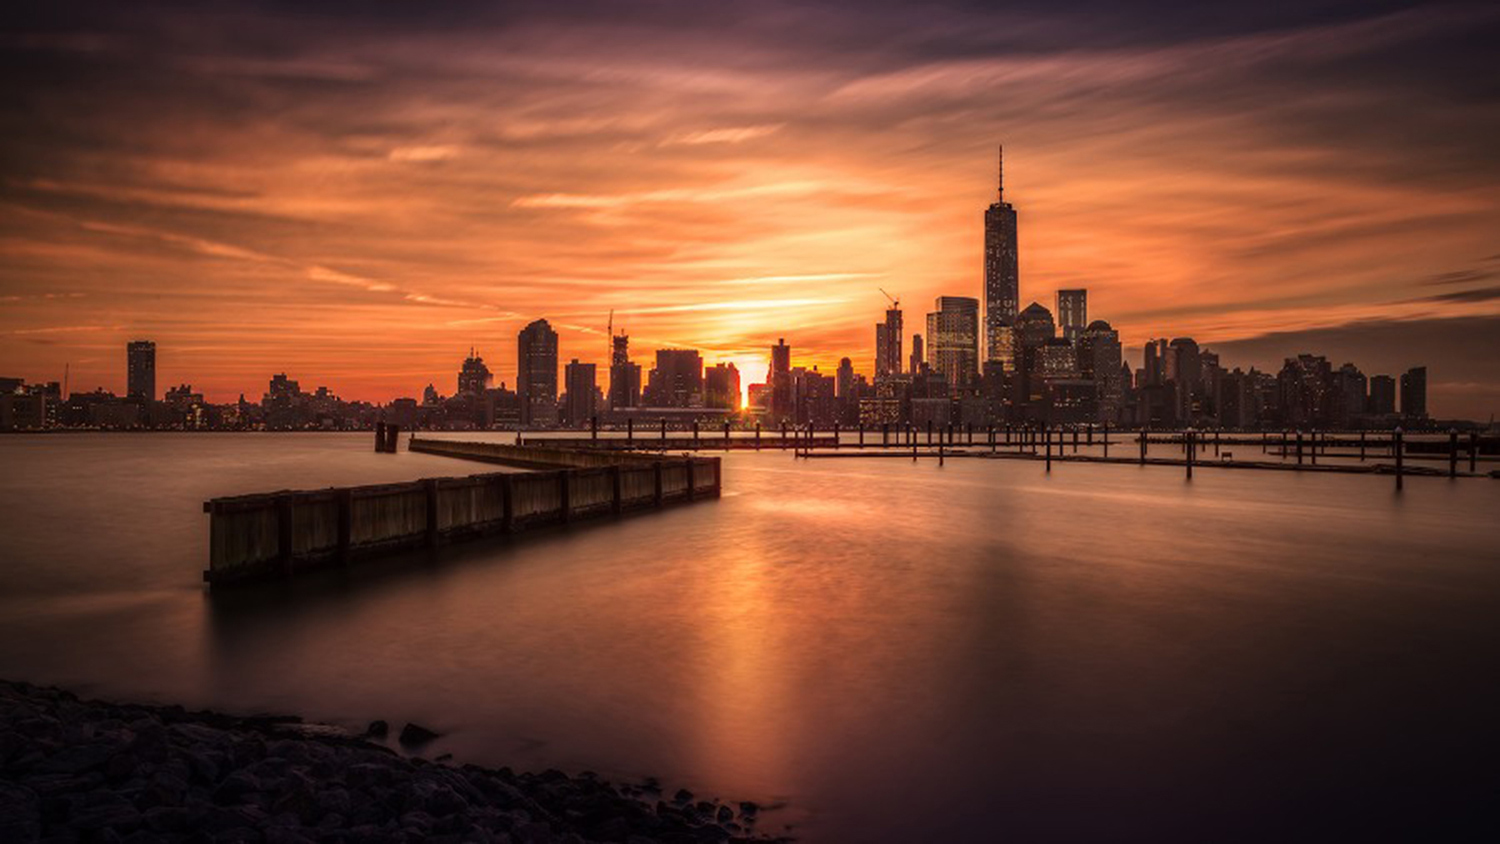 Check out our stunning photos of the NYC skyline